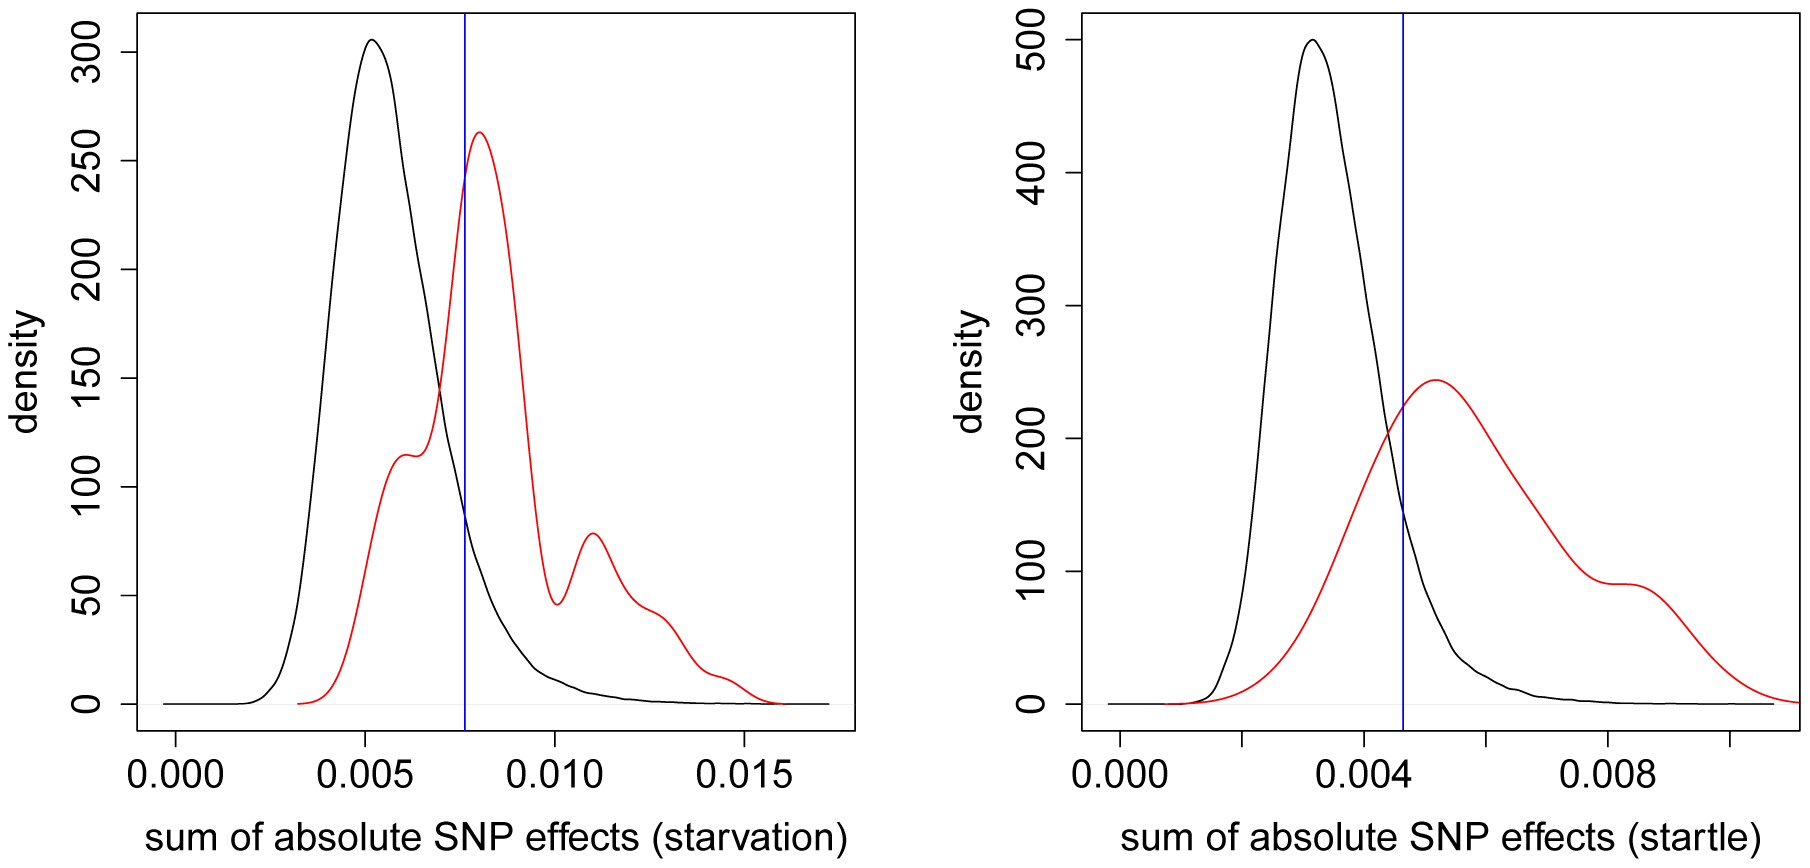 Distribution of absolute SNP effects.